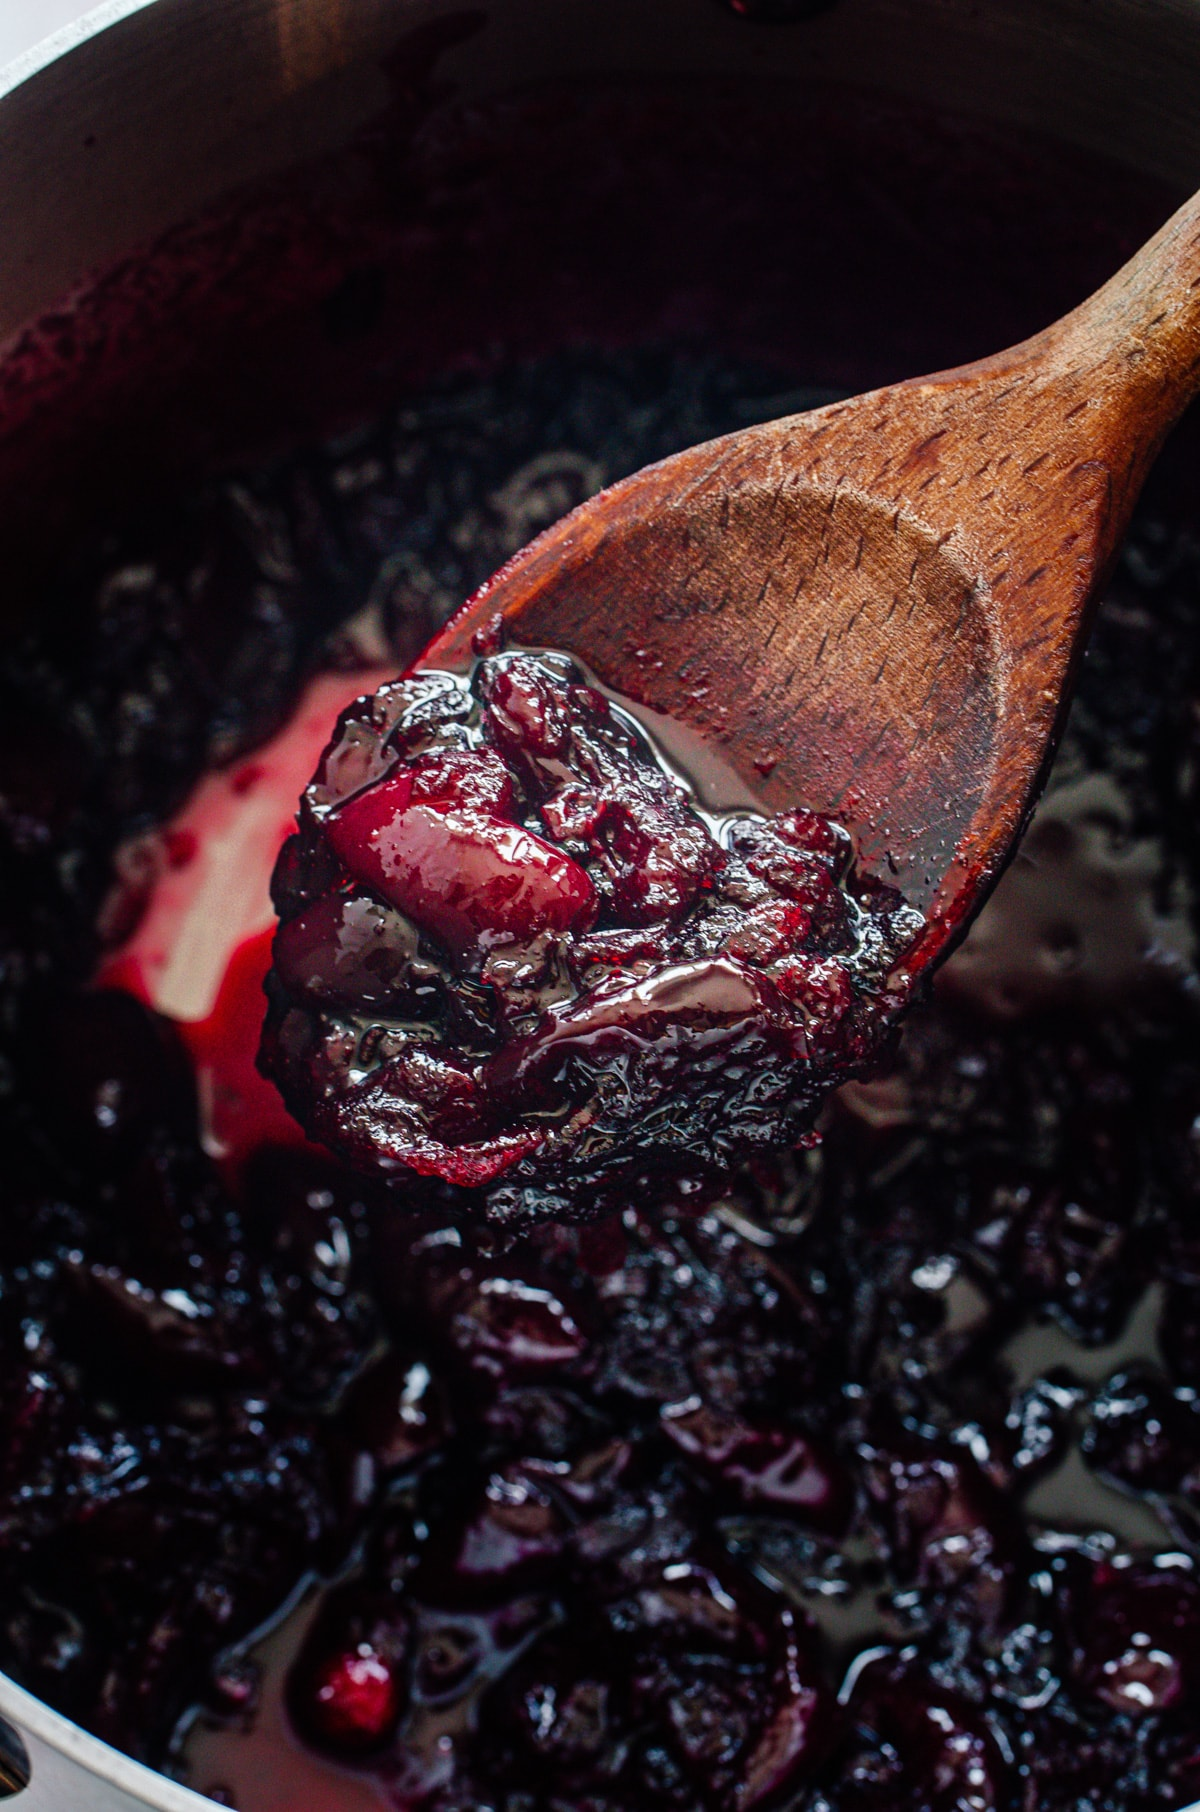 A wooden spoon lifting cherry jam out of a pot of jam.